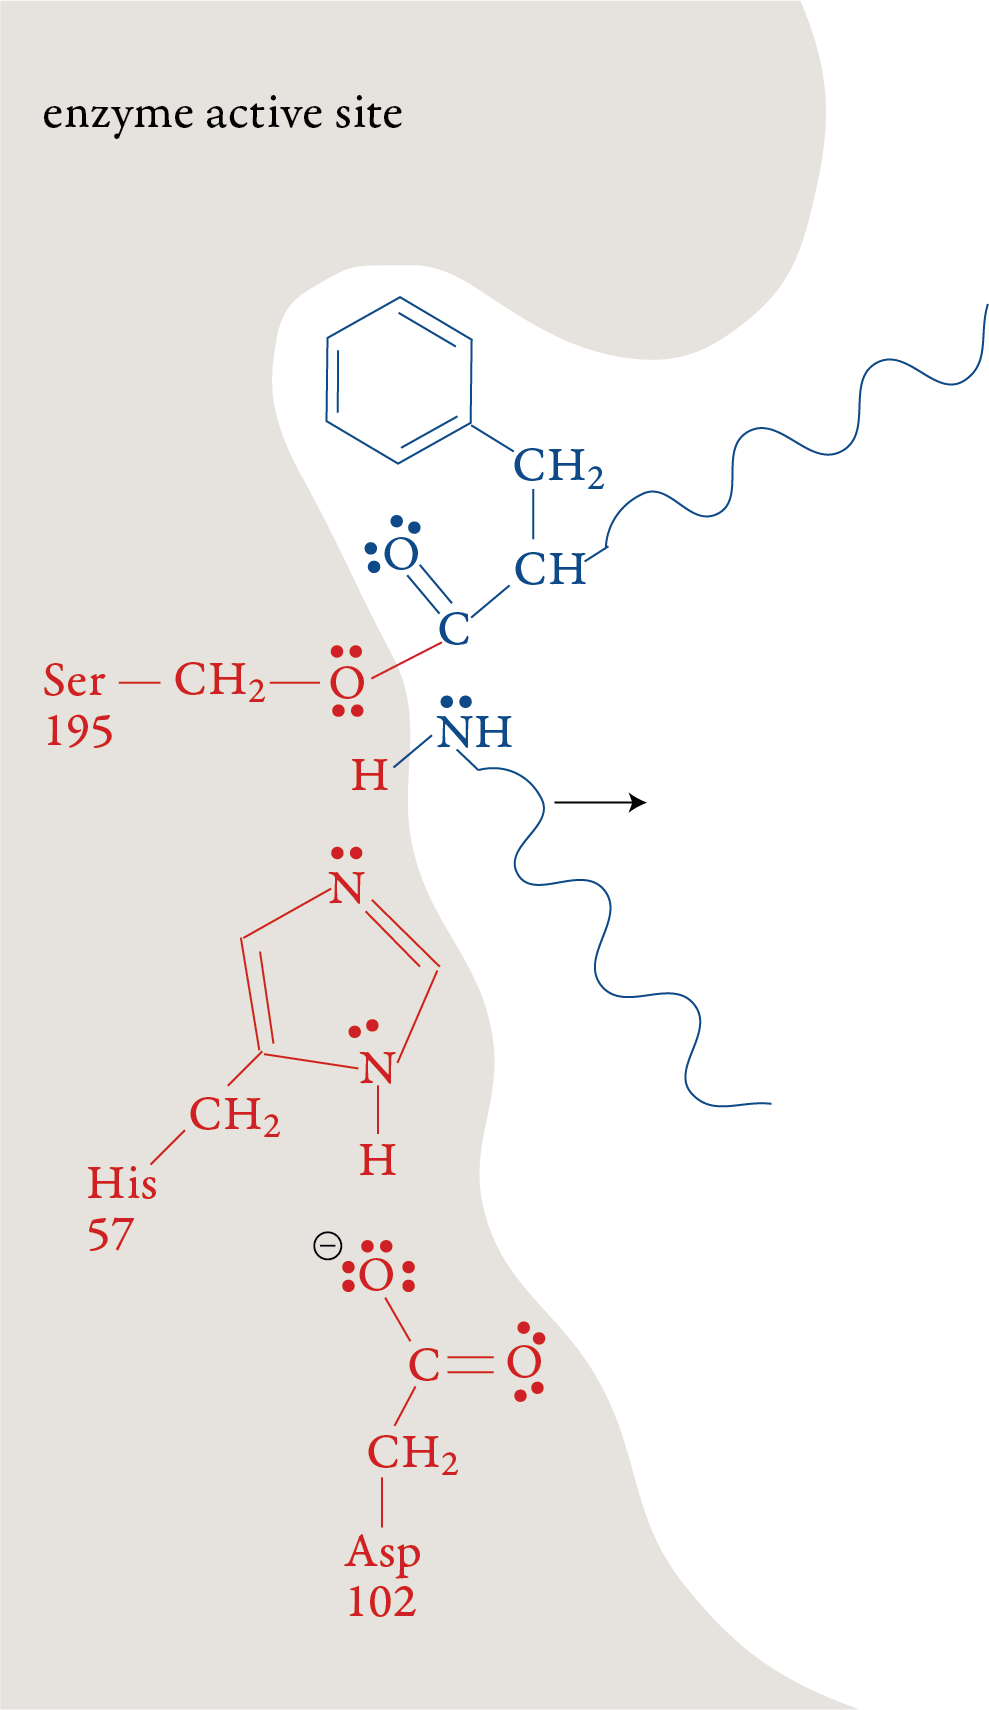 Image of the third step in the chymotrypsin mechanism